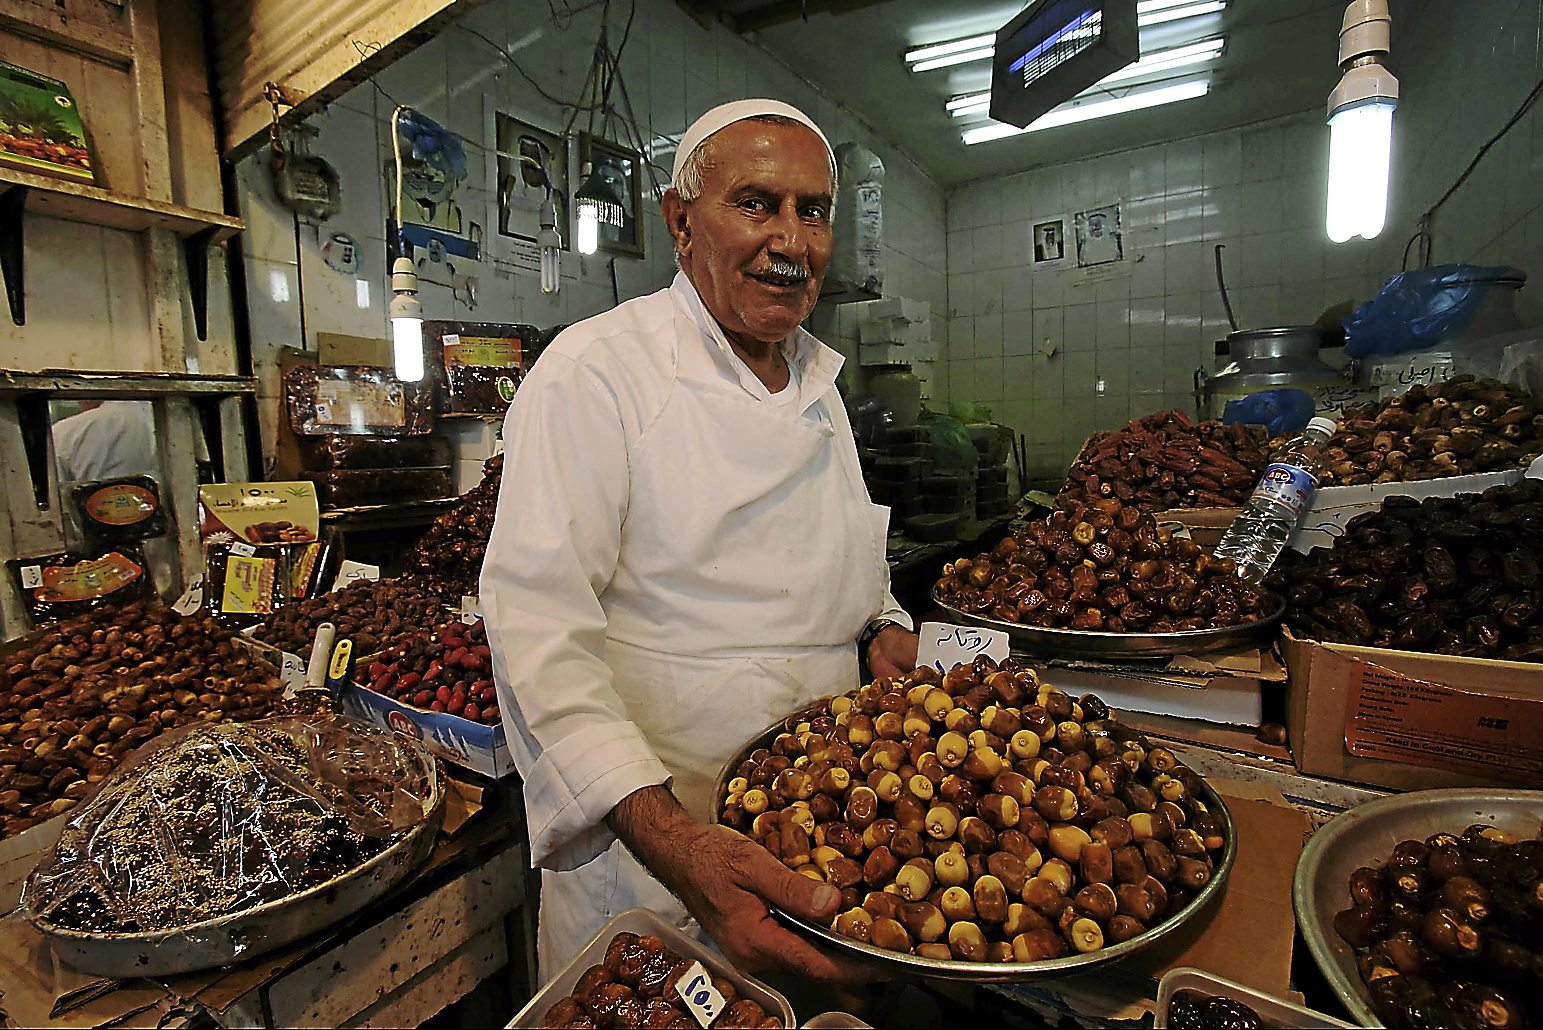 A vendor sells various kinds of dates at his stall in a market in Kuwait City. - AFP